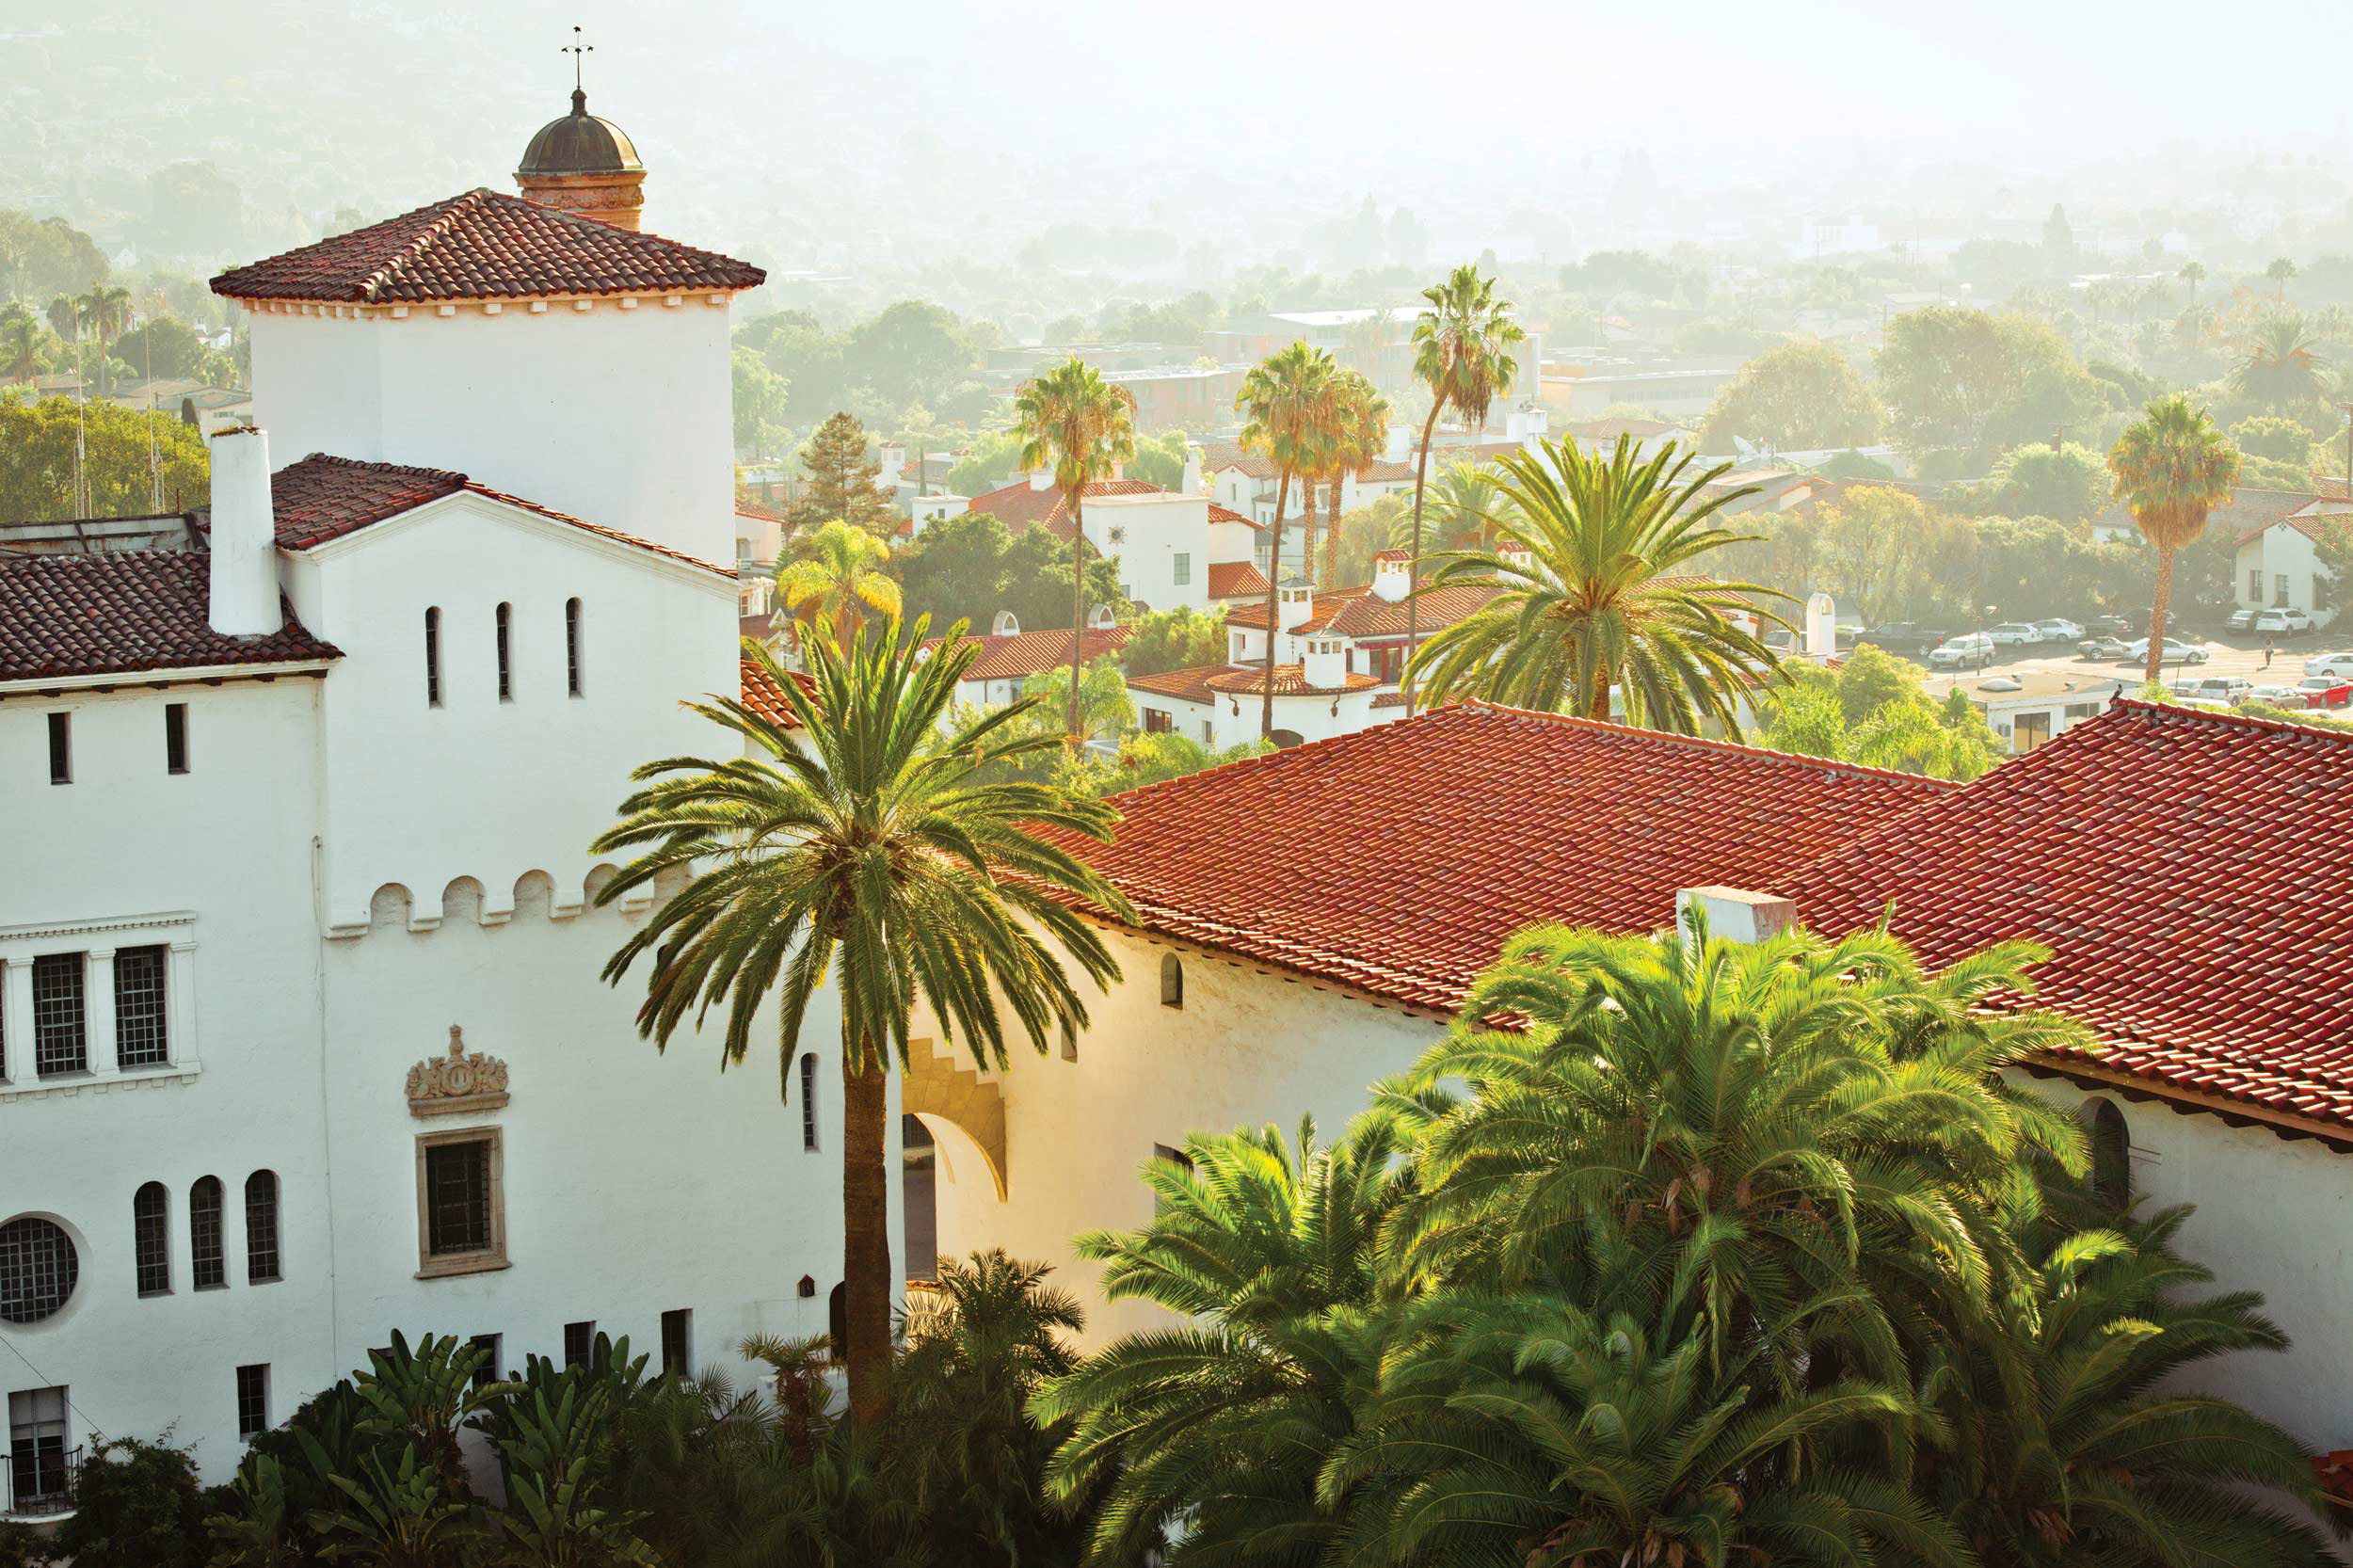 Santa Barbara, Ca | Hotels, Restaurants, Events & Activities Intended For Santa Barbara County Courthouse Calendar